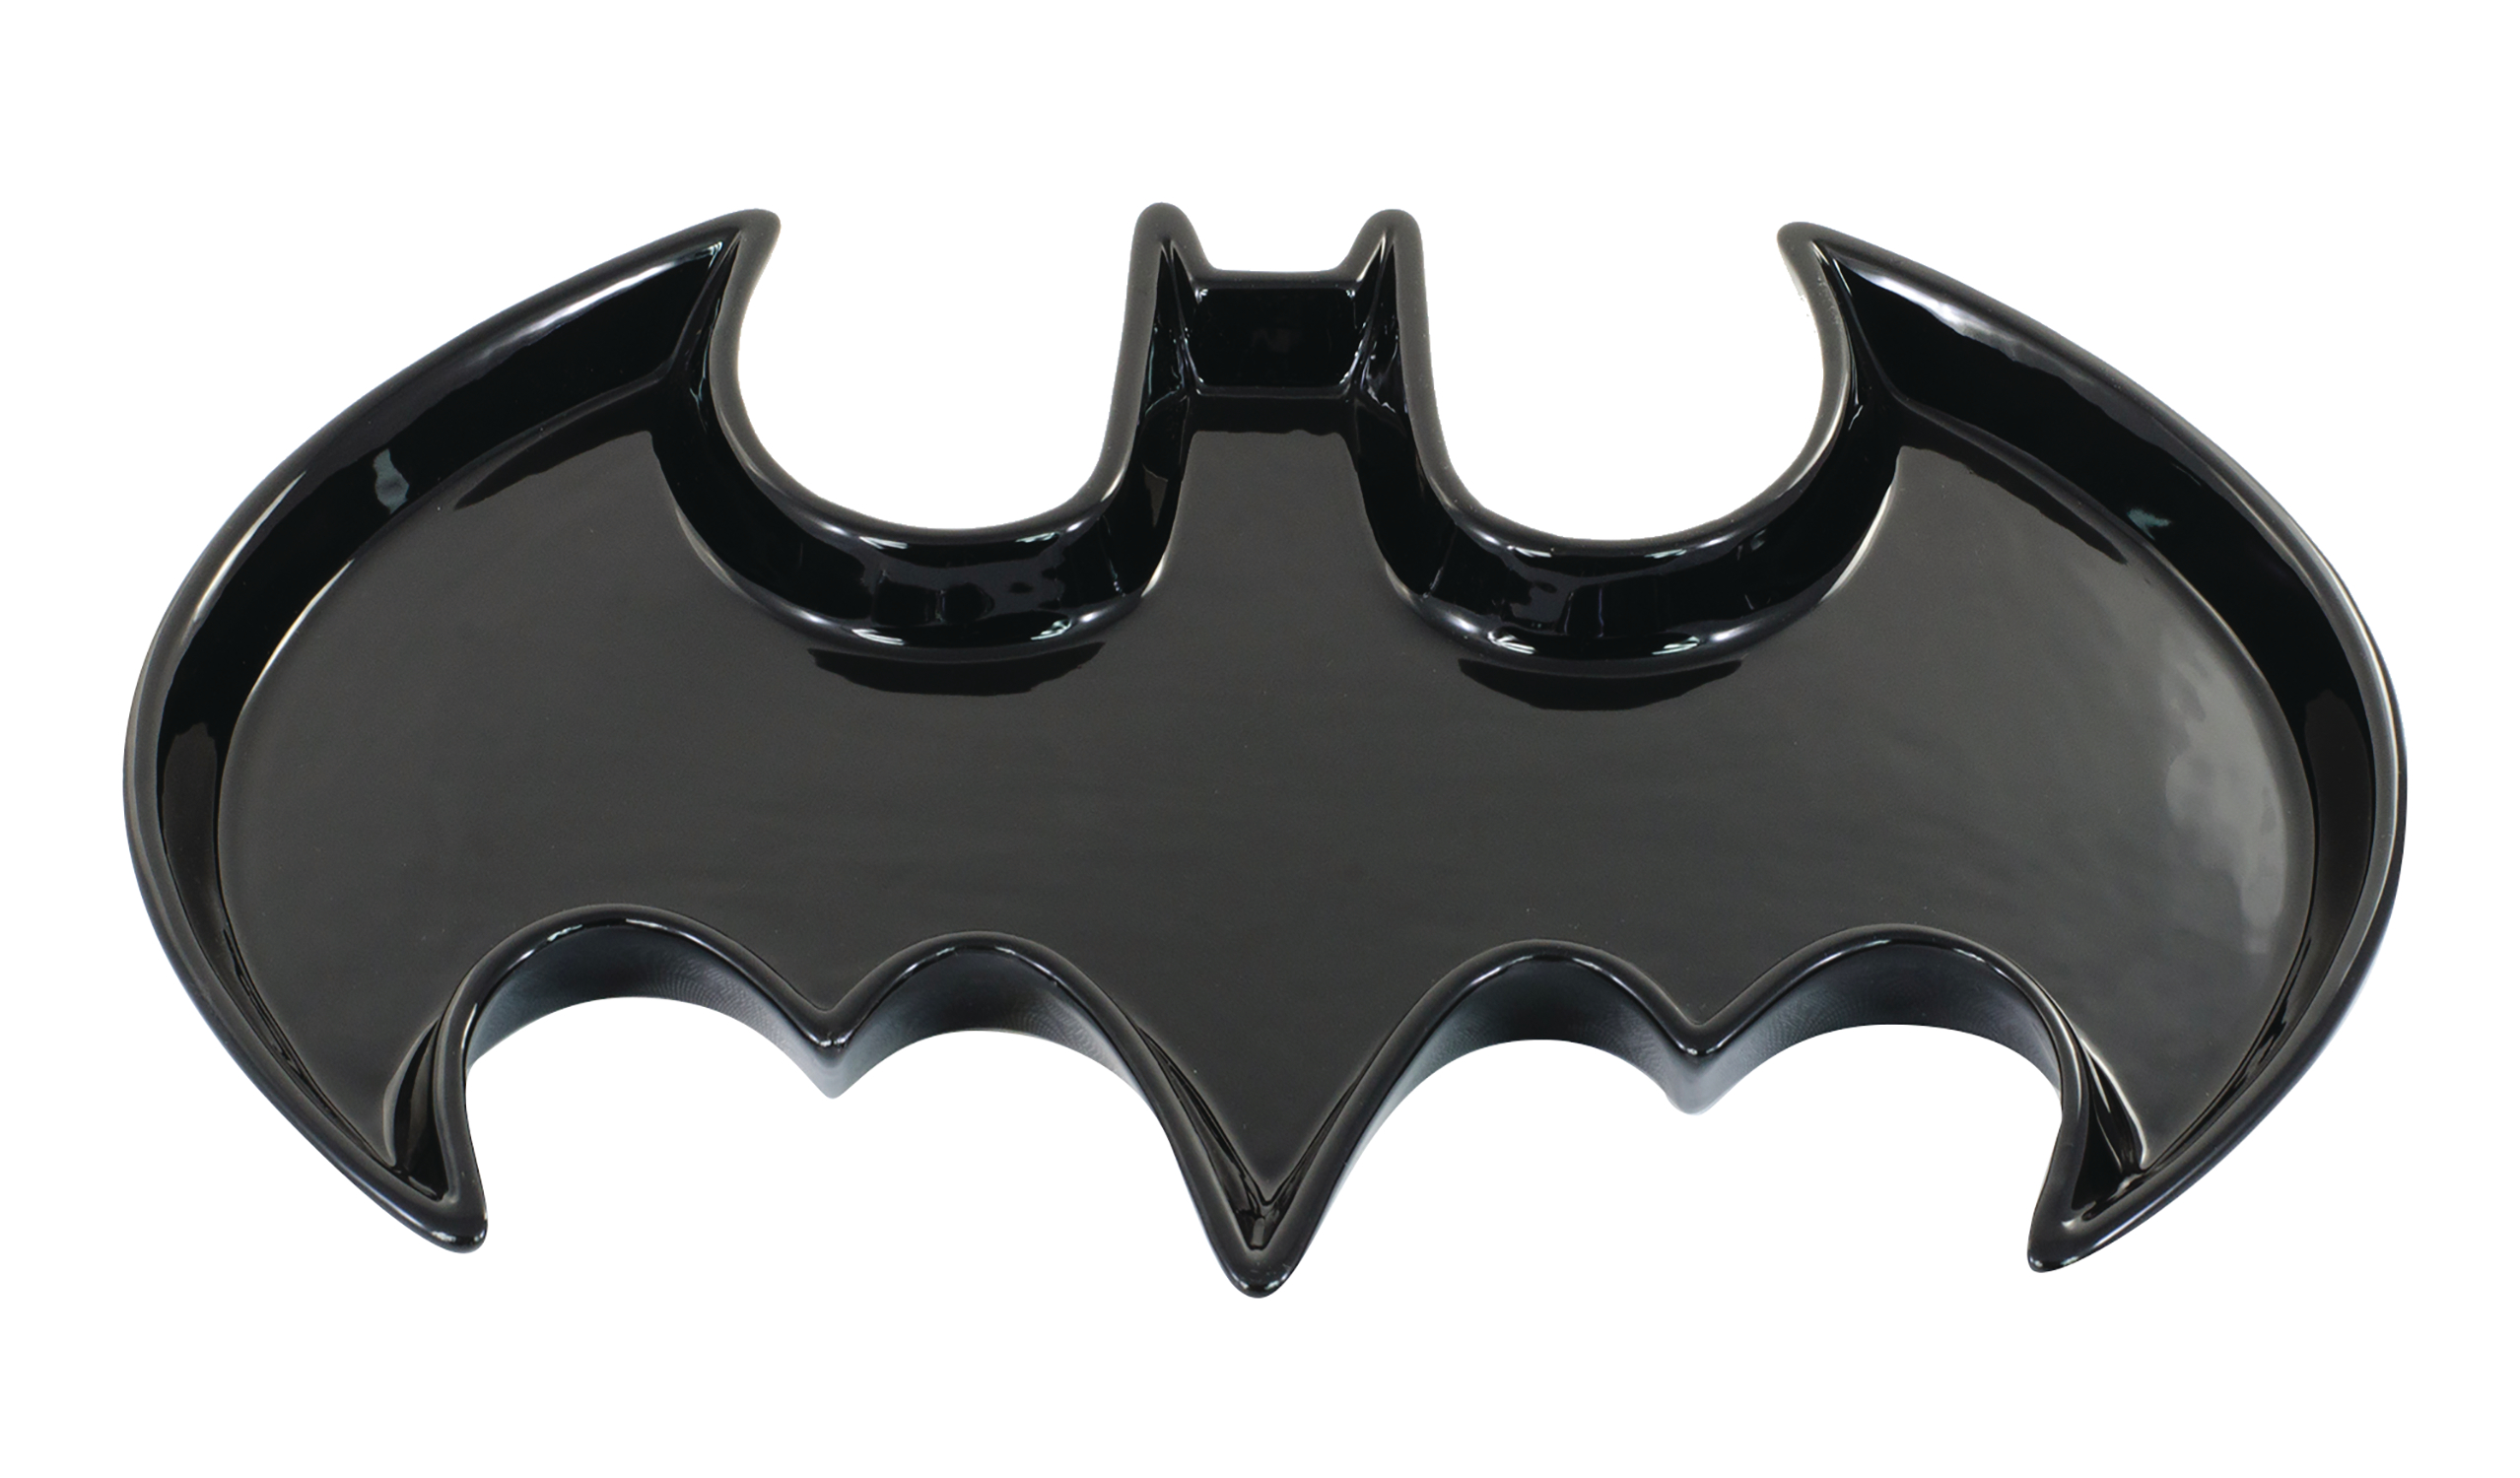 DC BATMAN CERAMIC PLATTER